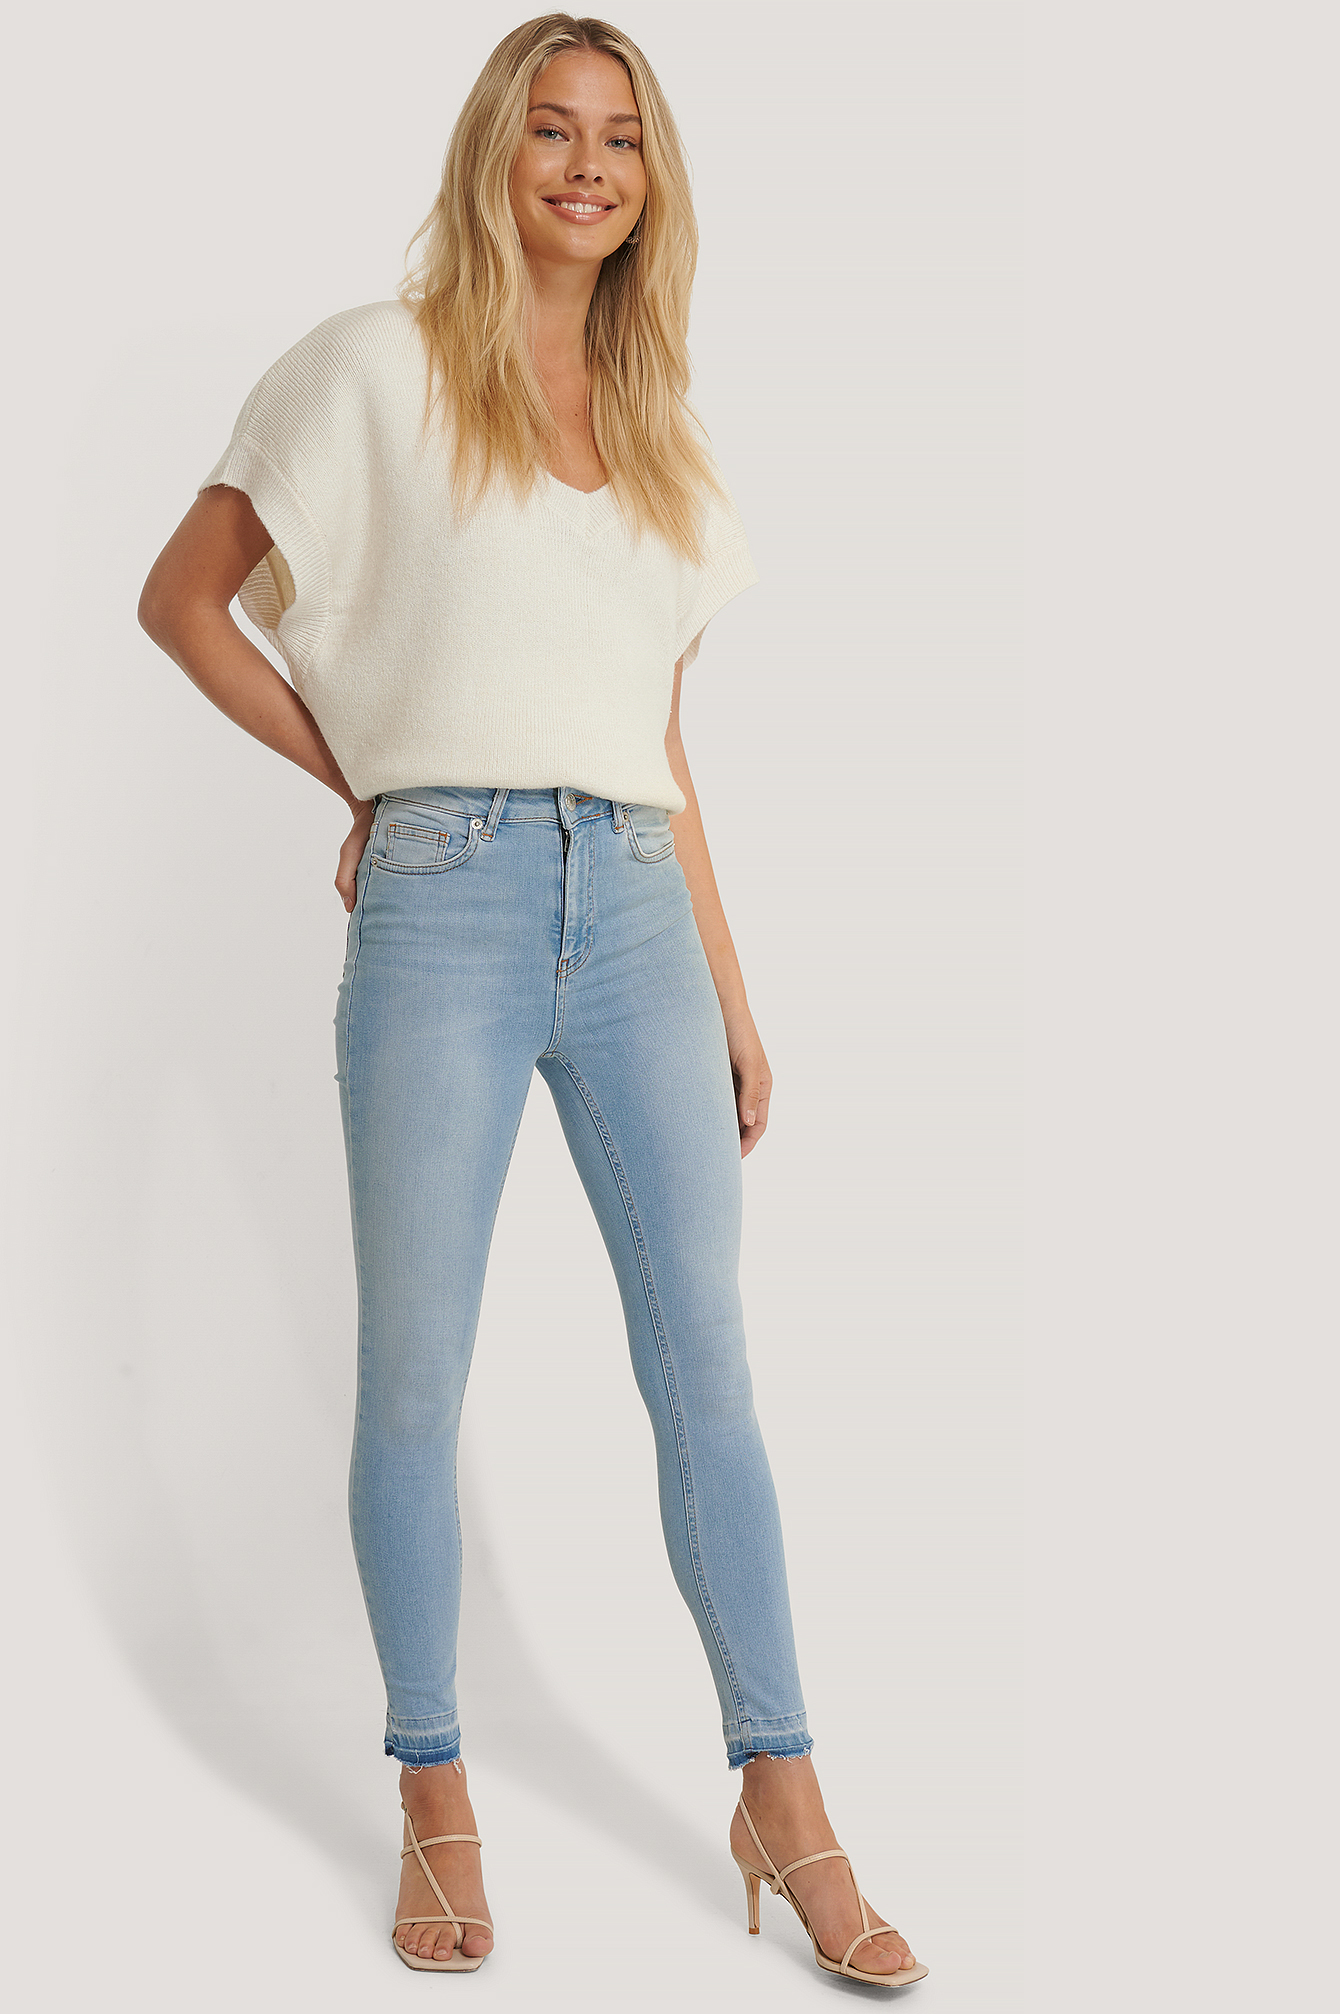 Light Blue Skinny High Waist Open Hem Jeans